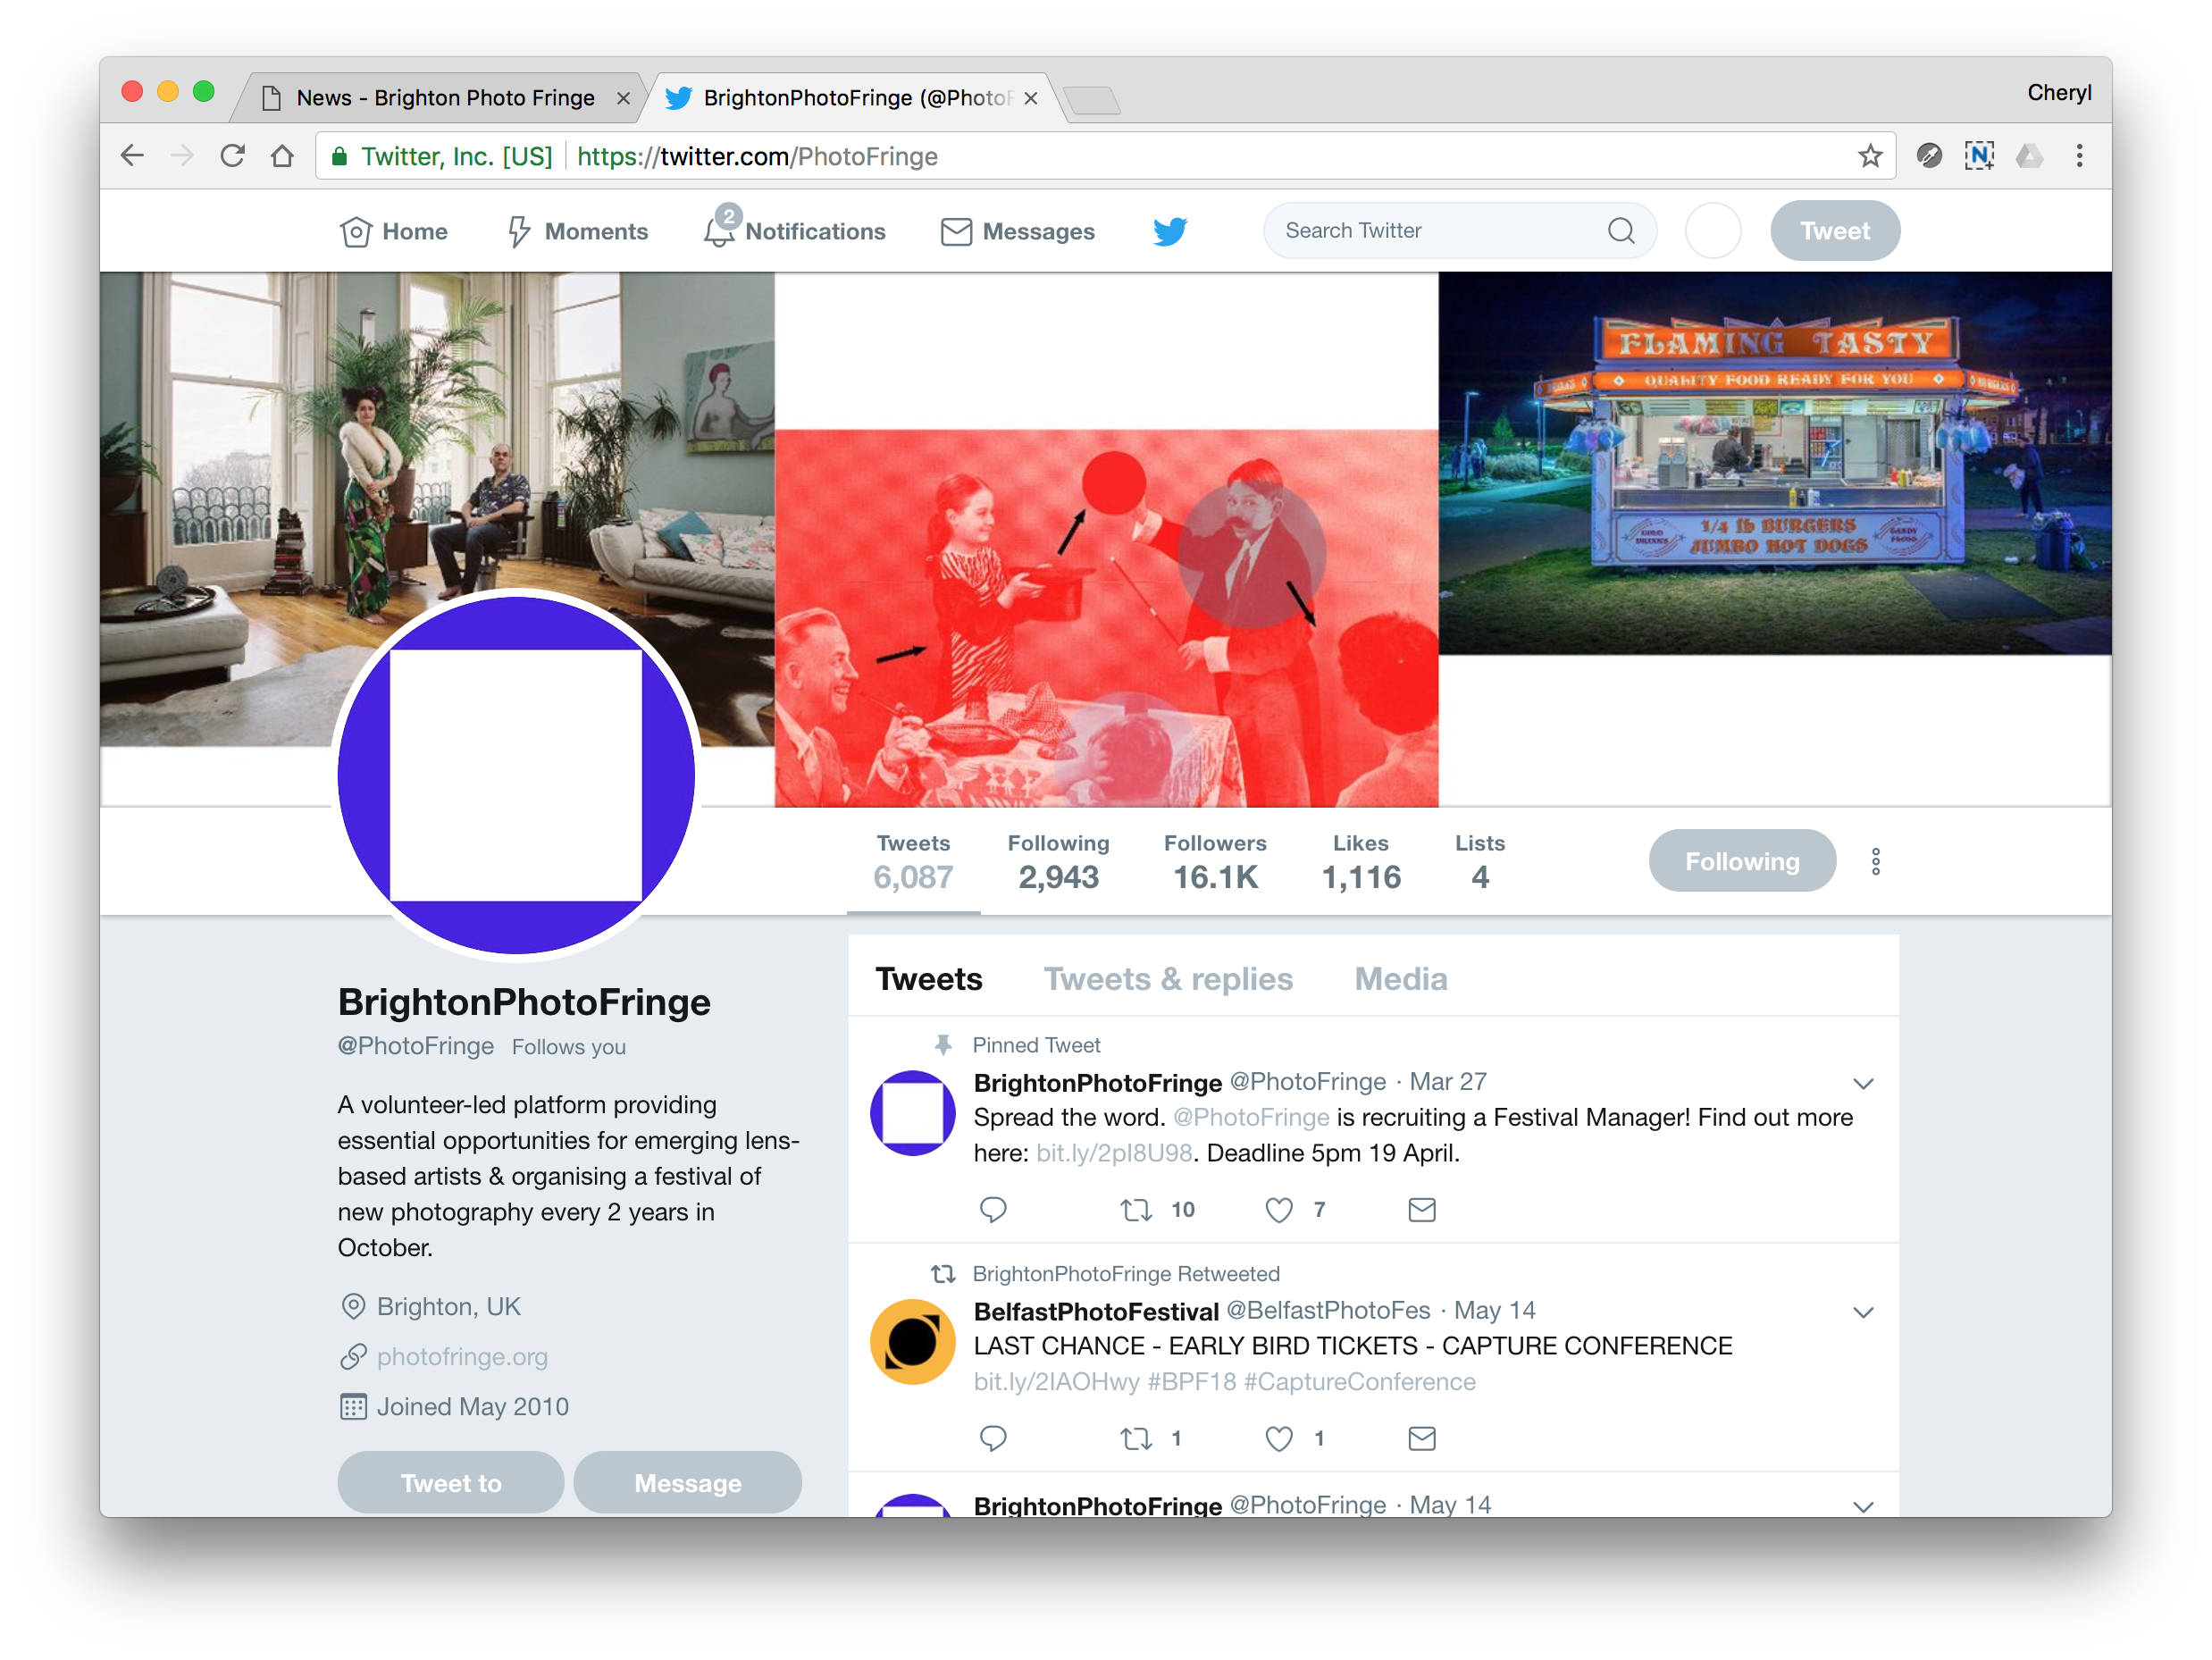 Screen Shot 2018-05-28 at 10.34.59 AM.png